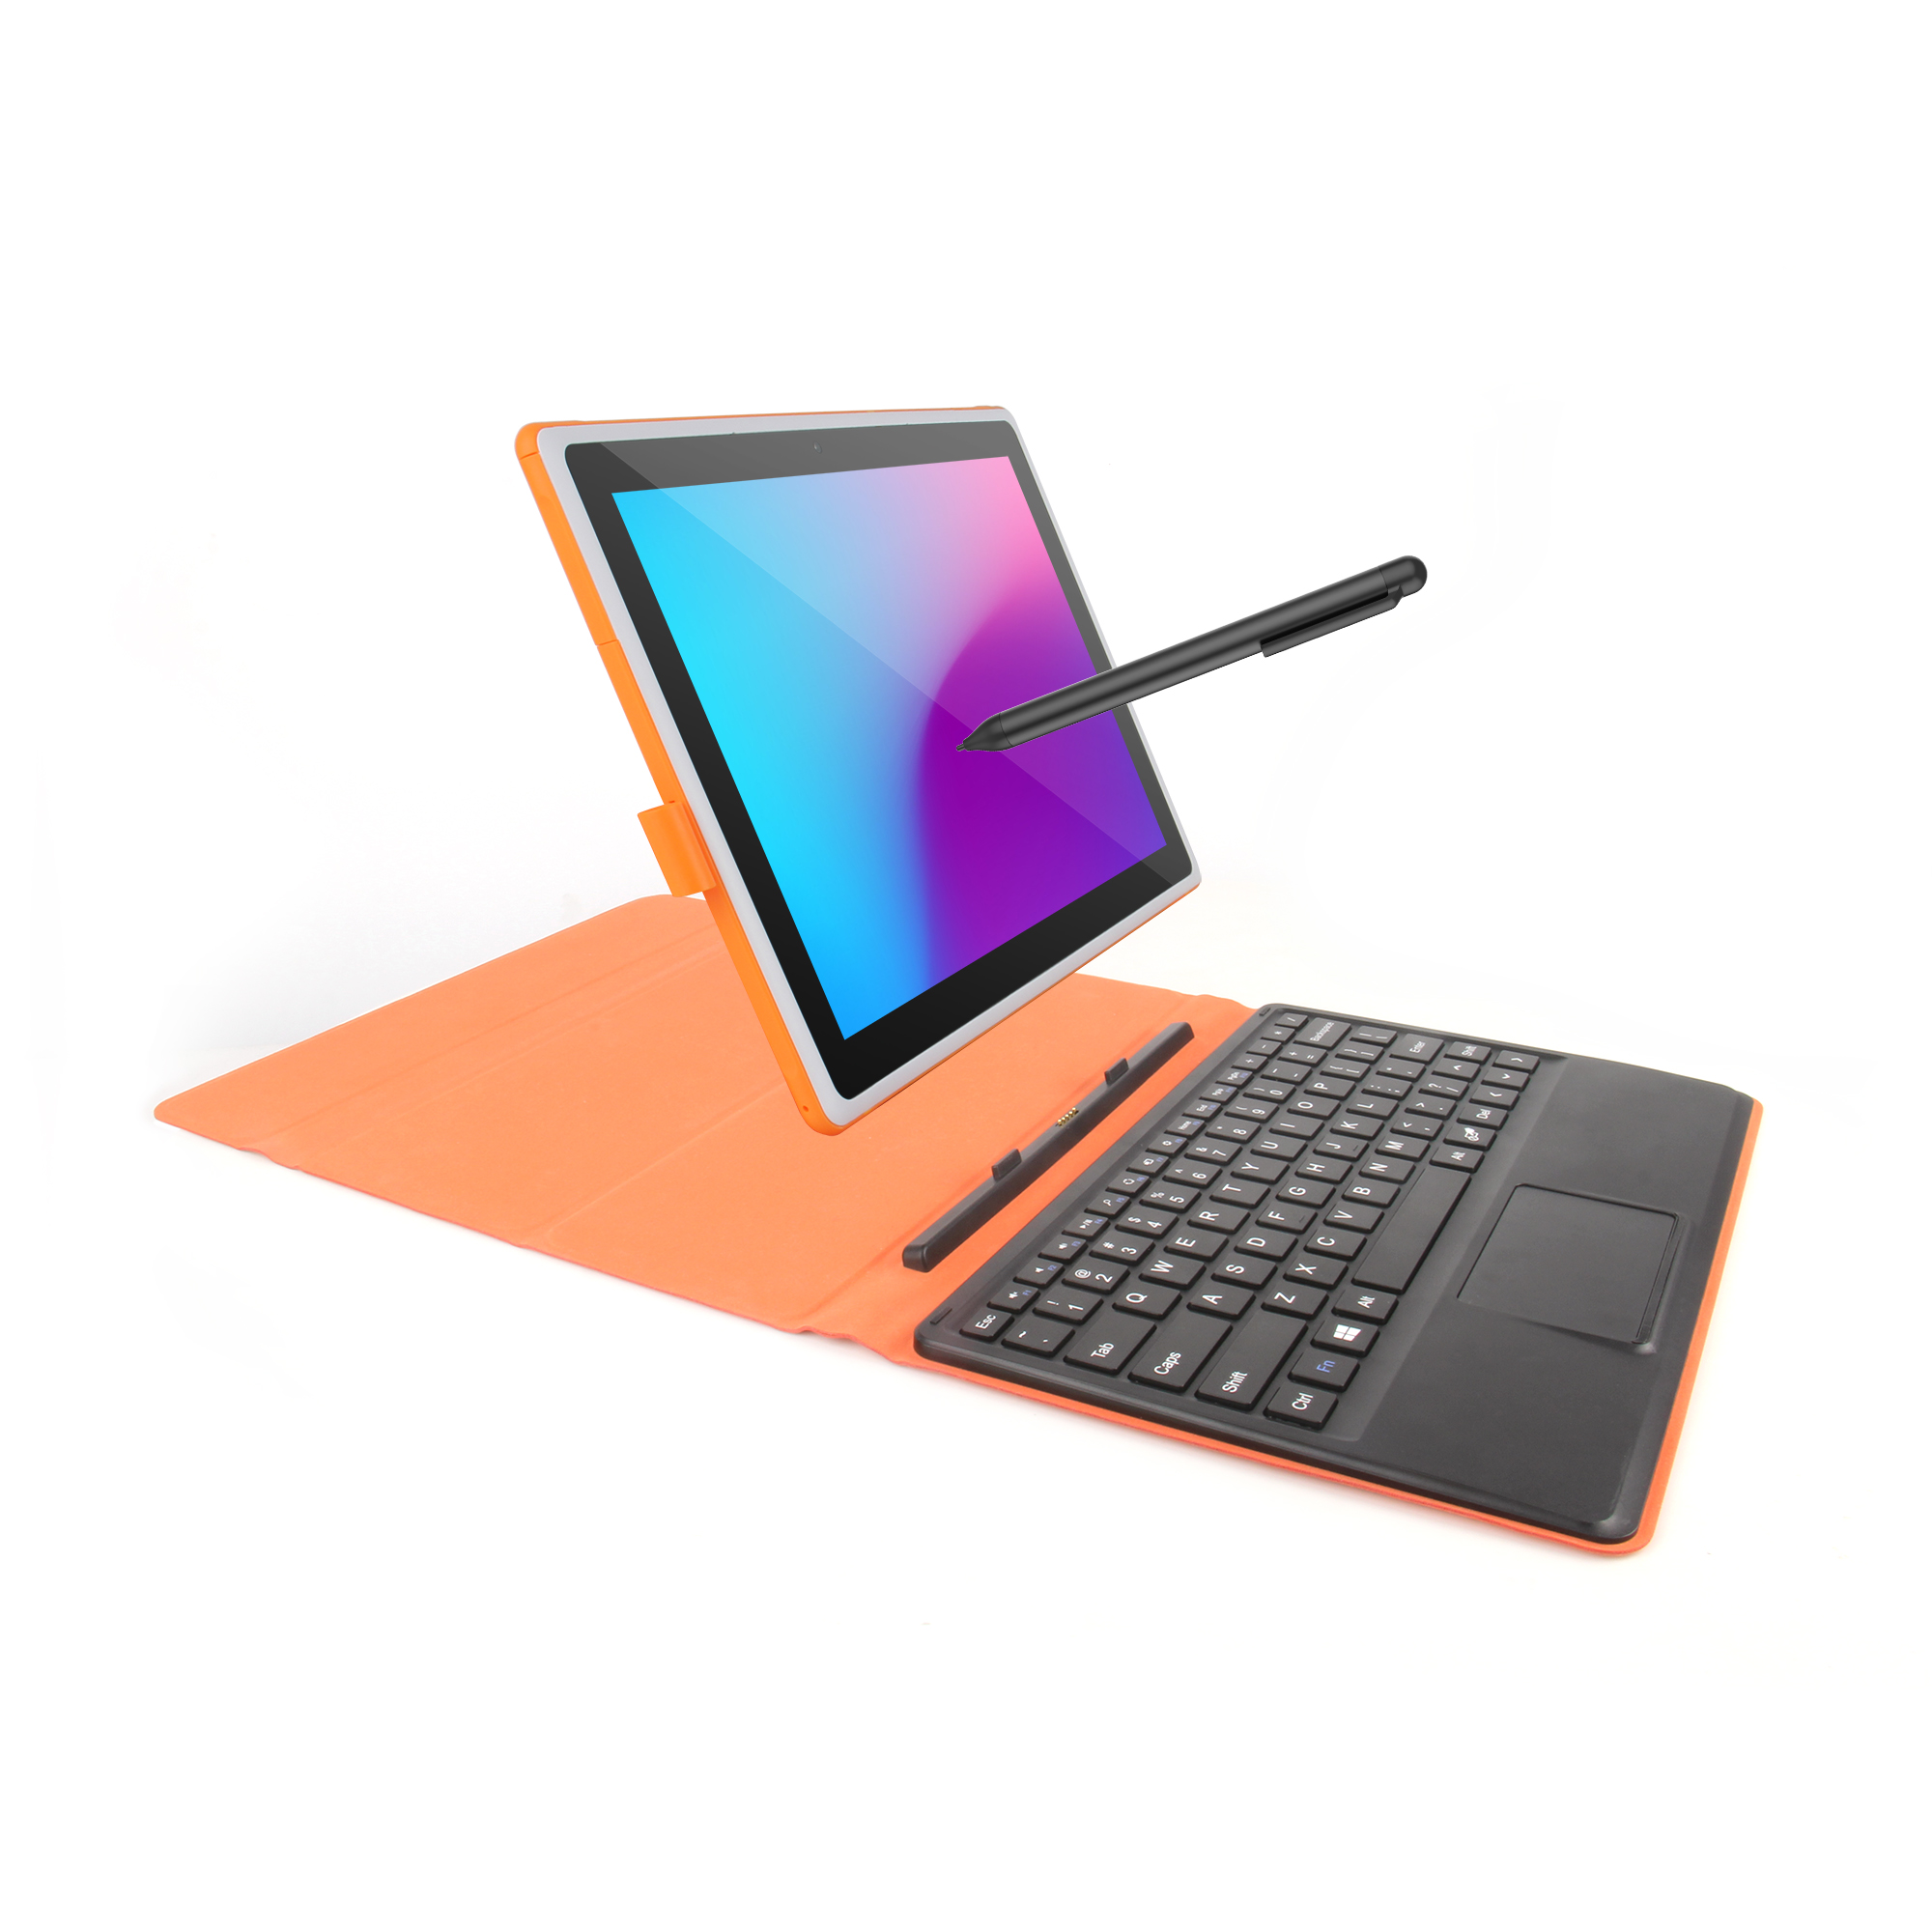 10 Inch Android Tablet With Stylus Keyboard Tablet Pc Android 2 In 1 Tablet With Keyboard Buy 10 Inch Android Tablet With Stylus Keyboard 2 In 1 Tablet With Keyboard Tablet